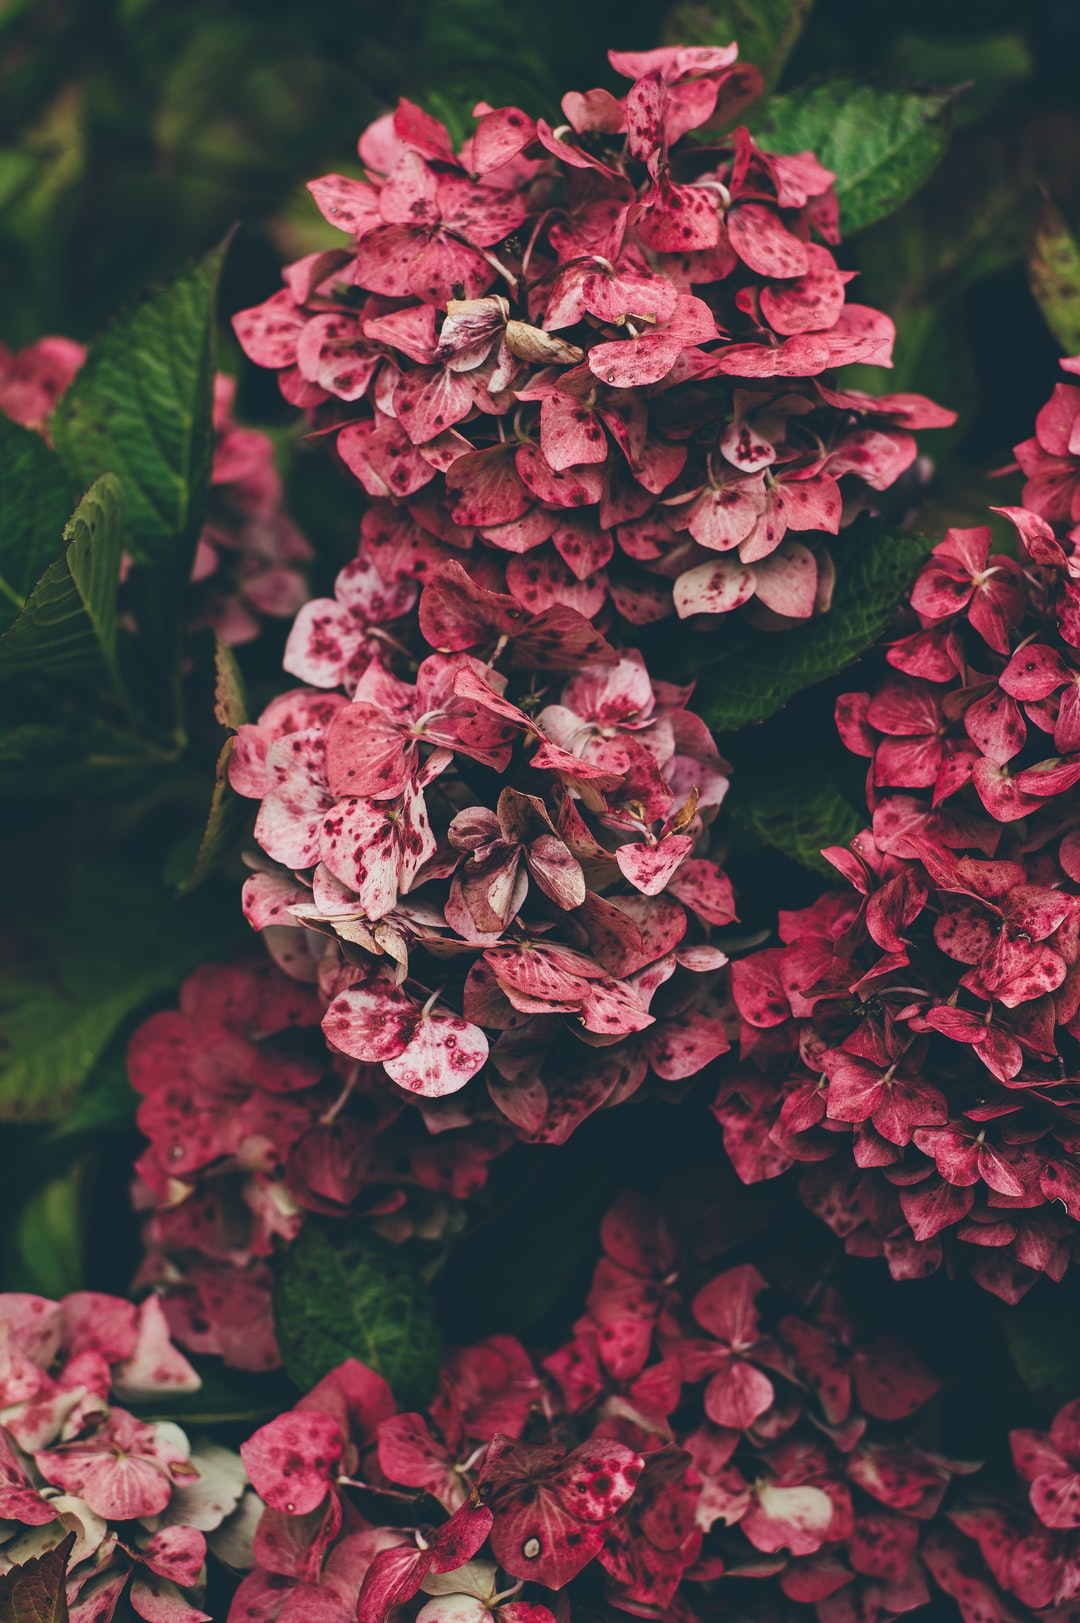 Red hydrangea clusters